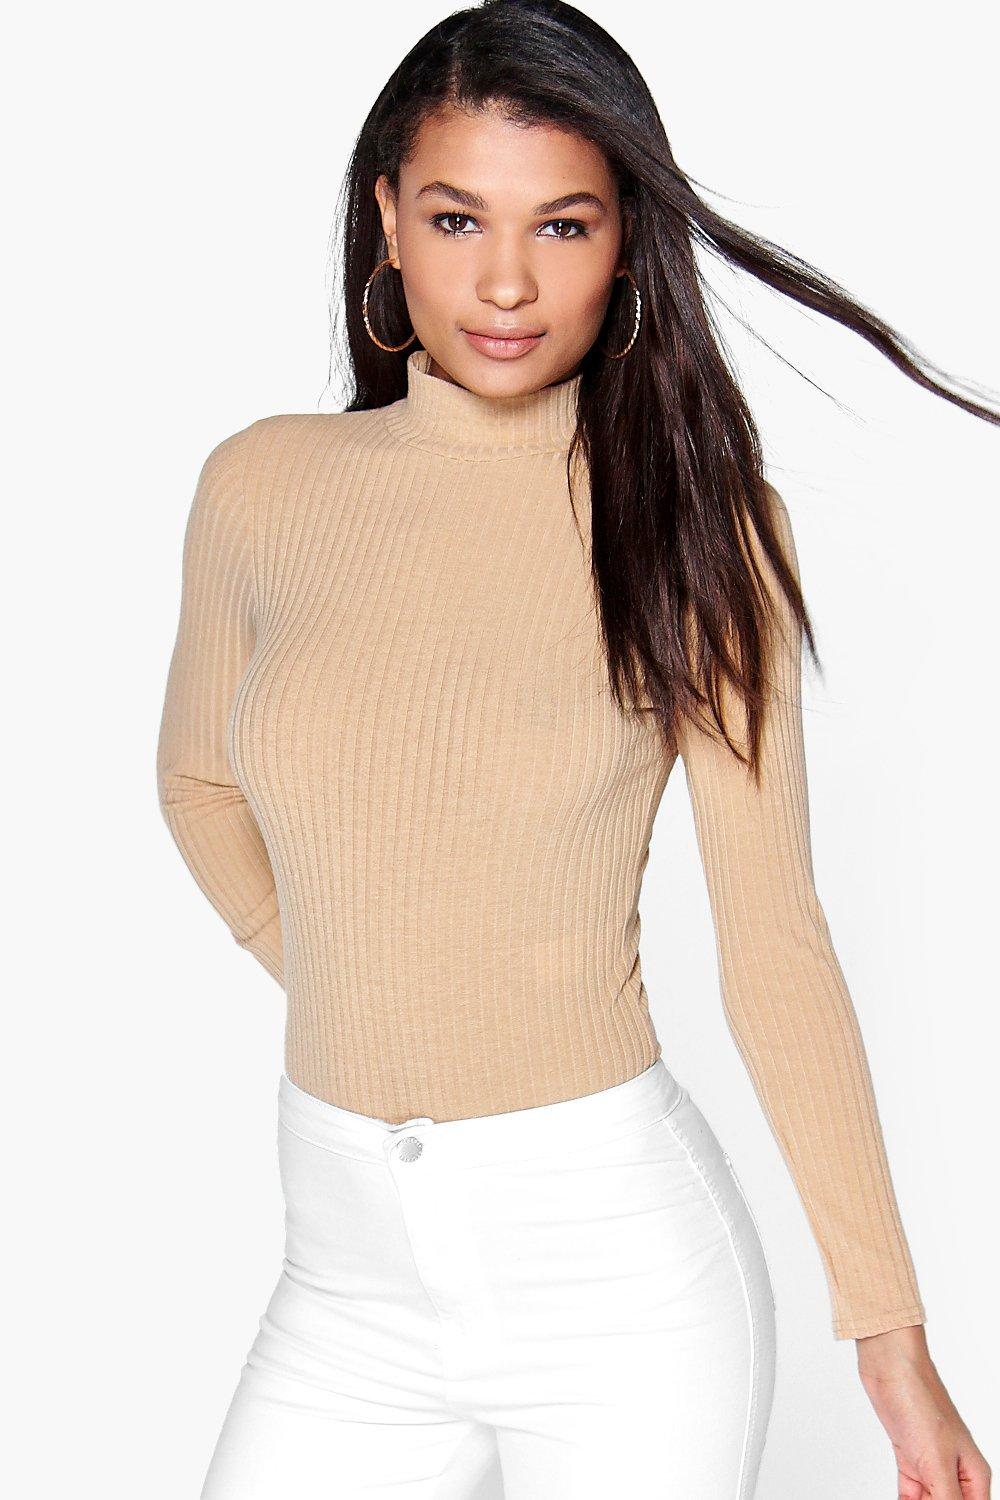 69adfd434 Details about Boohoo Ava Turtle Neck Long Sleeve Rib Knit Bodysuit